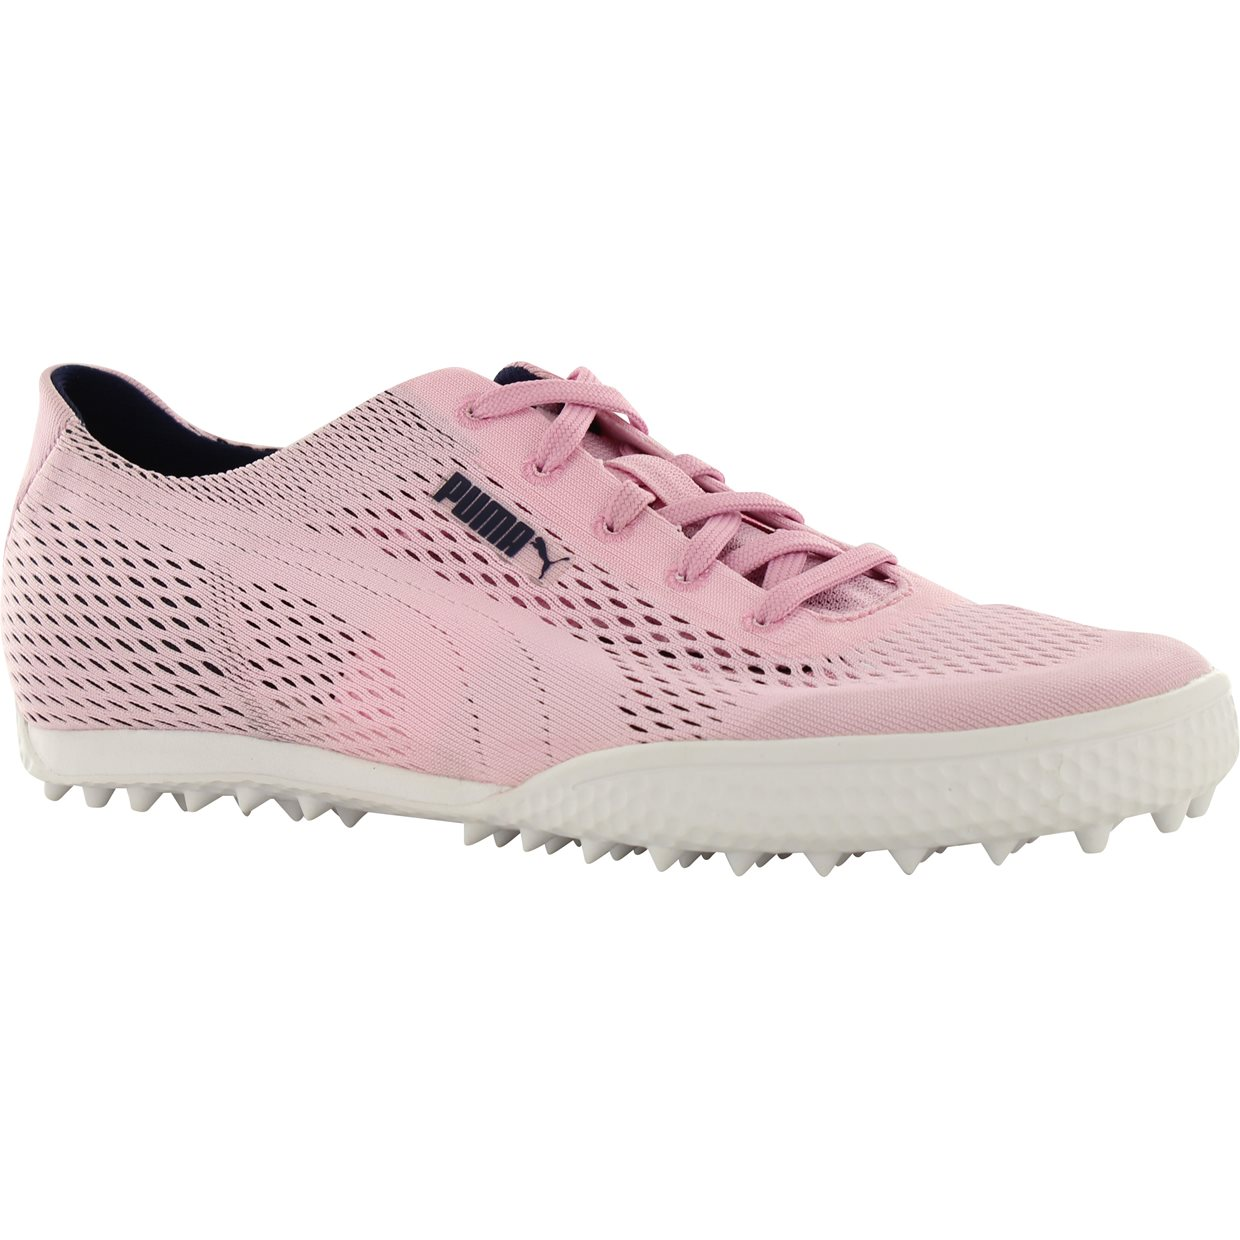 Puma MonoLite Cat Woven Ladies Spikeless Shoes at GlobalGolf.com fb8877aa1